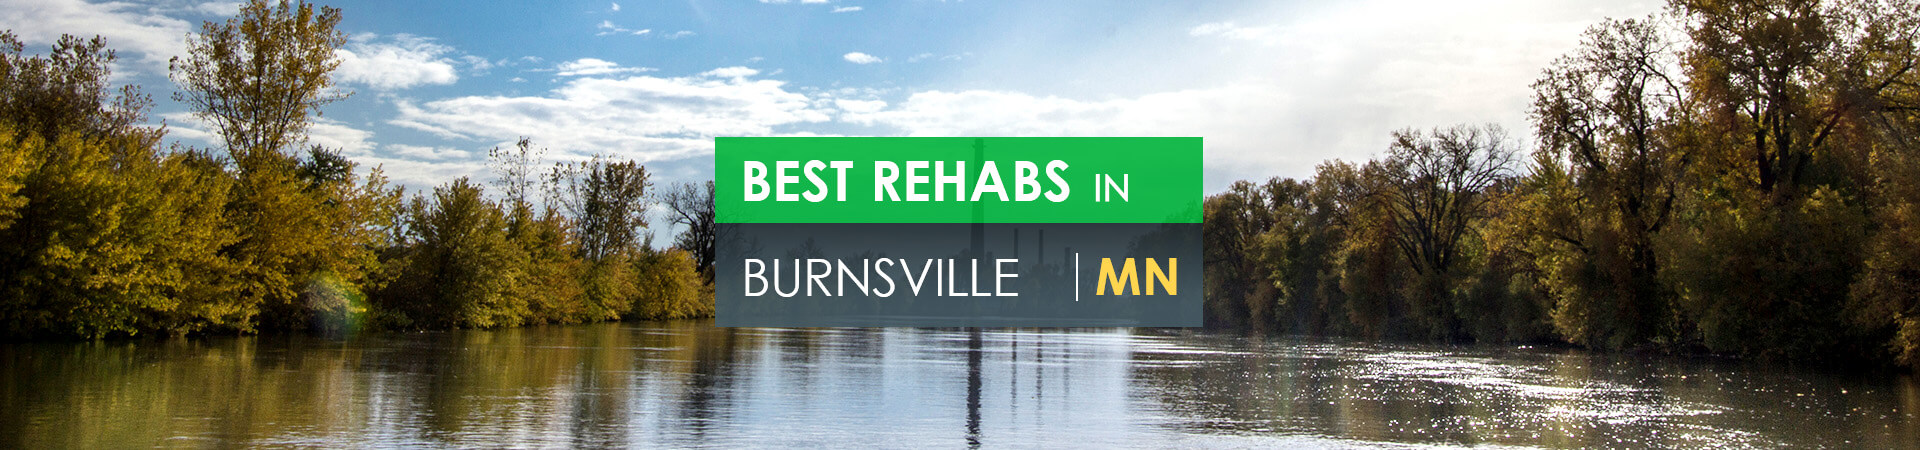 Best rehabs in Burnsville, MN